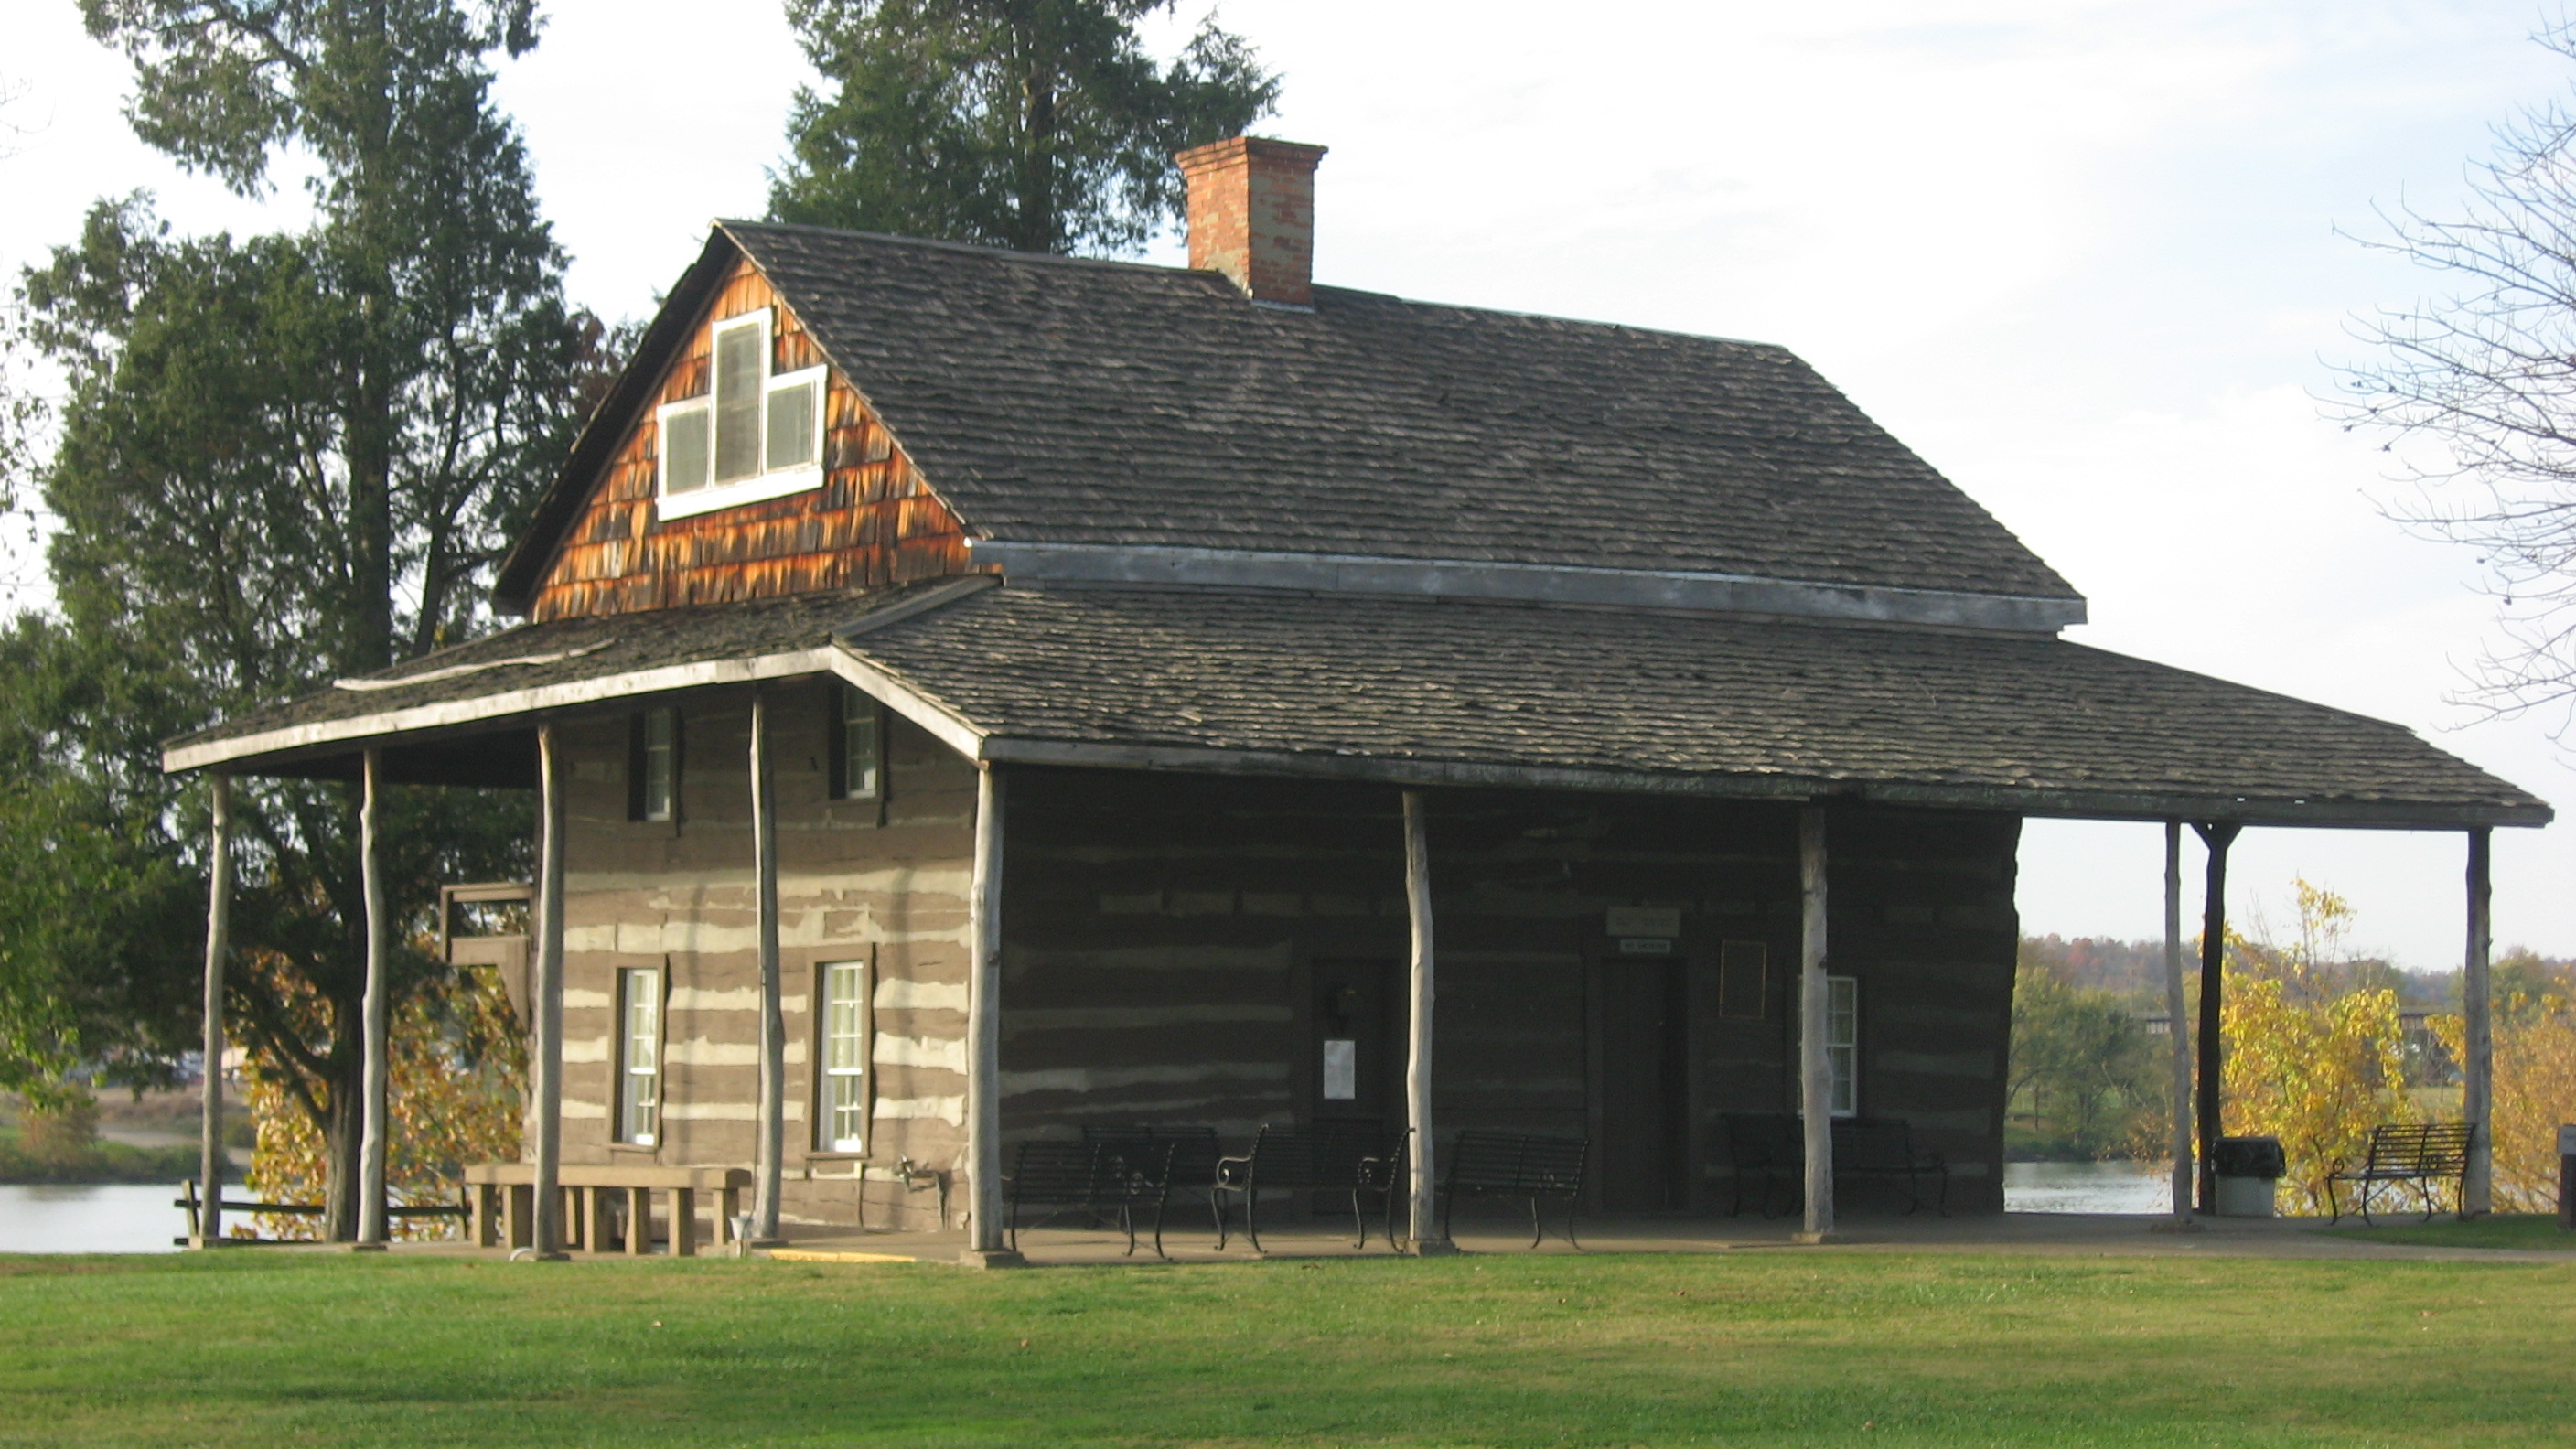 The Mansion House museum is located at Tu-Endie-Wie State Park